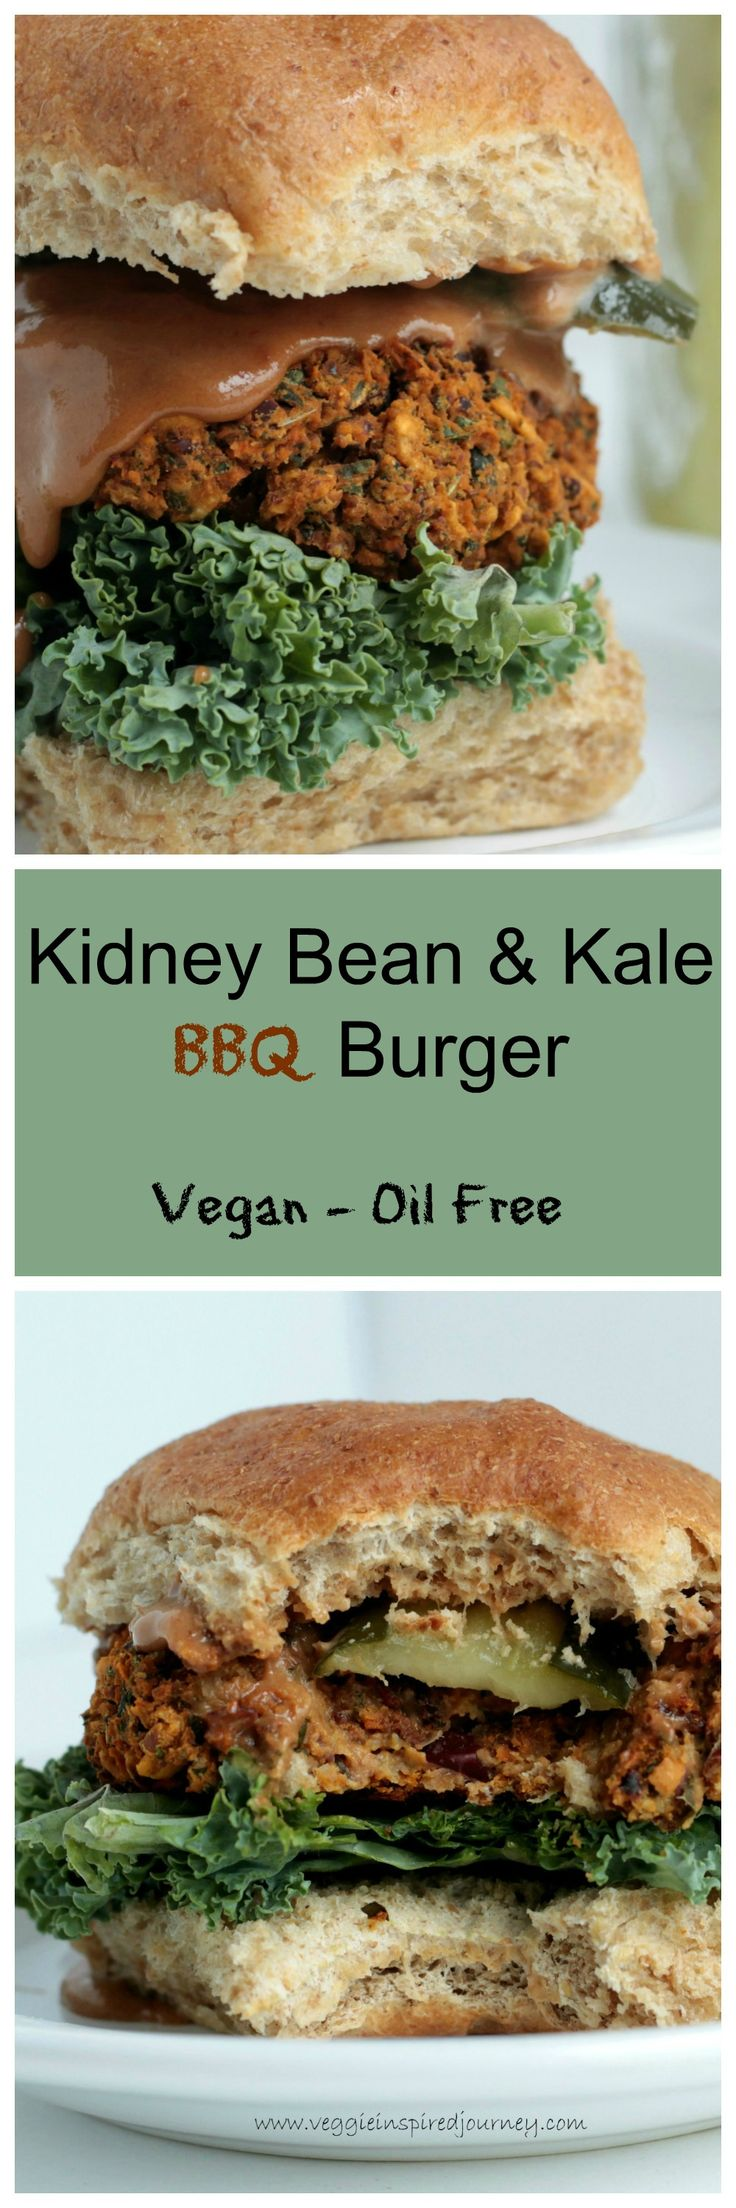 "Kidney Bean & Kale BBQ Burger - these vegan burgers hold up perfectly! Crispy on the outside, ""meaty"" on the inside and so full of BBQ flavor goodness! #vegan"